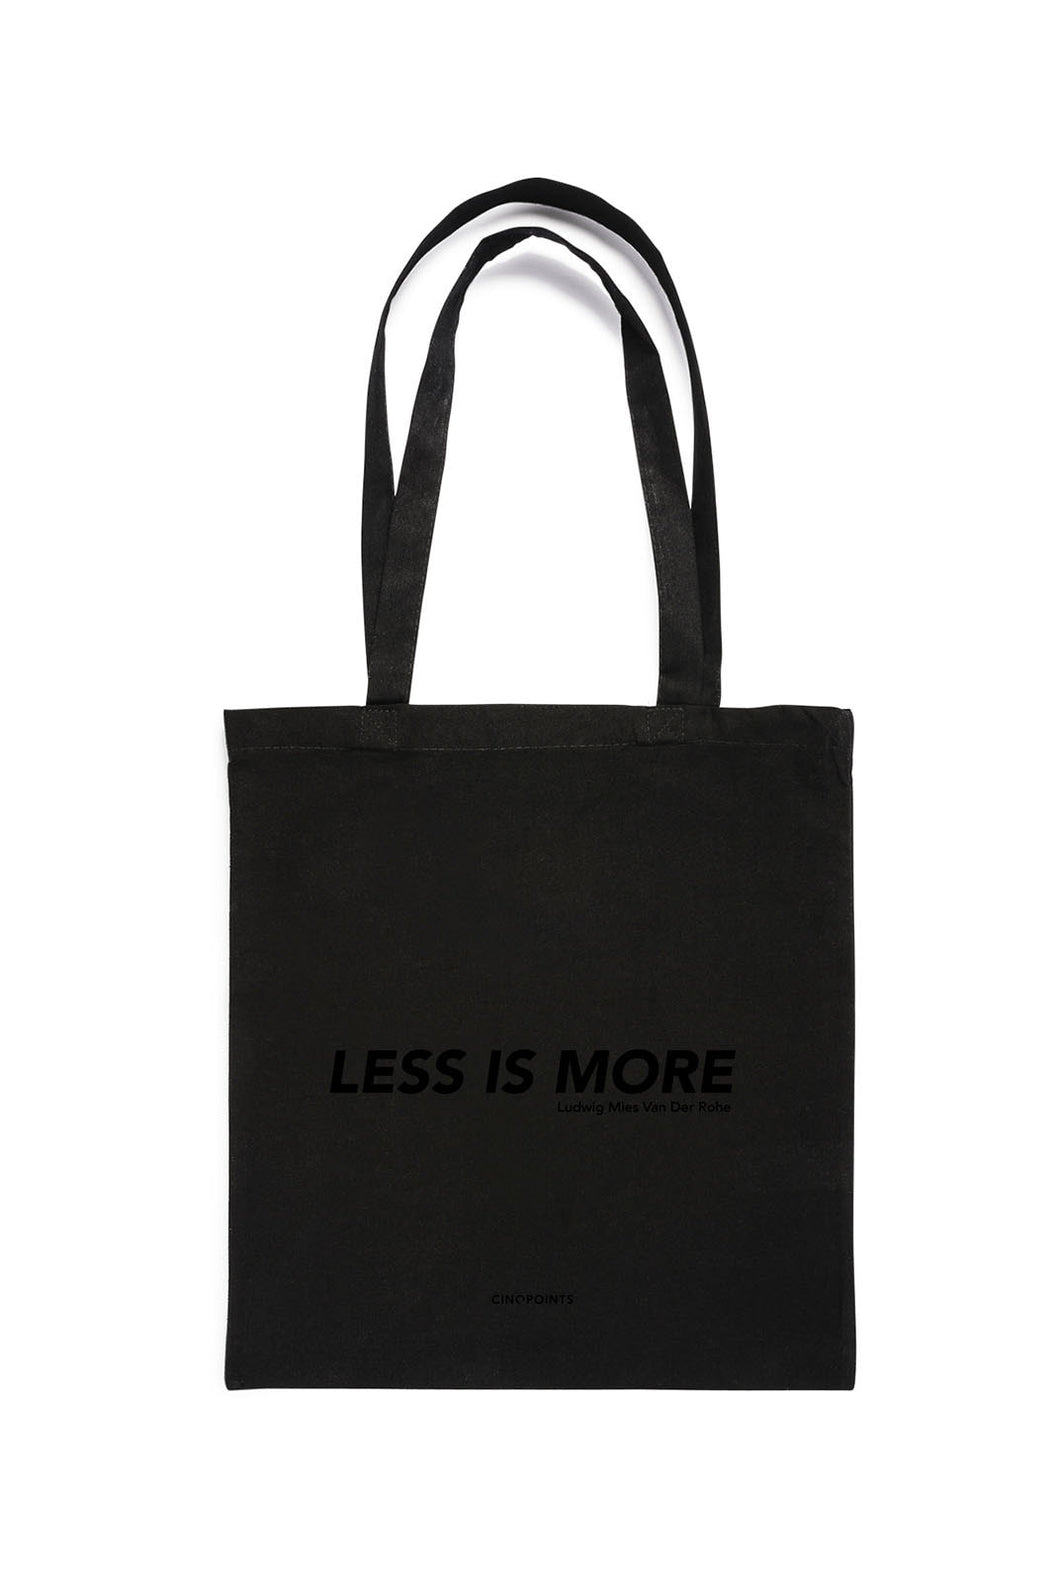 Cinqpoints - Tote Bag - Less is More